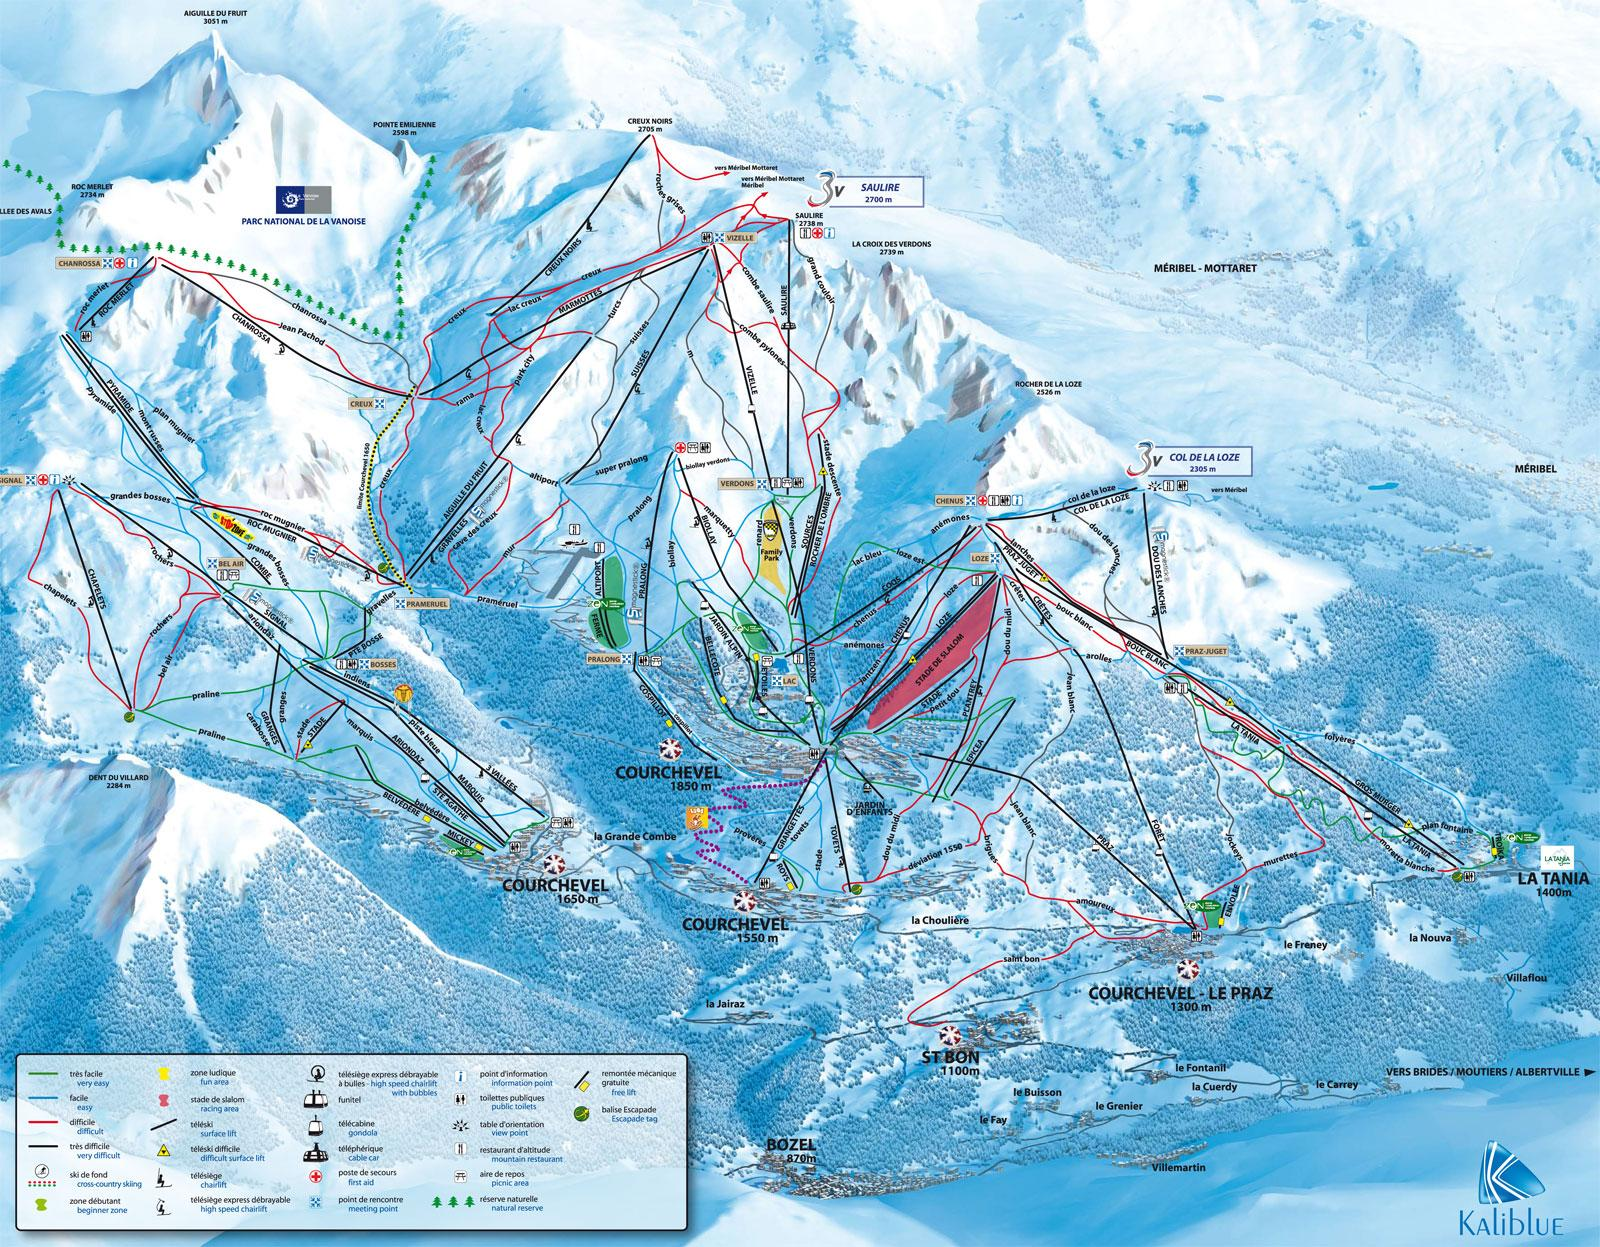 maps high resolution with Courchevel Piste Map on Courchevel Piste Map further Map Ushuaia Region additionally 672064 further 1920x1080 as well cutoutshop.